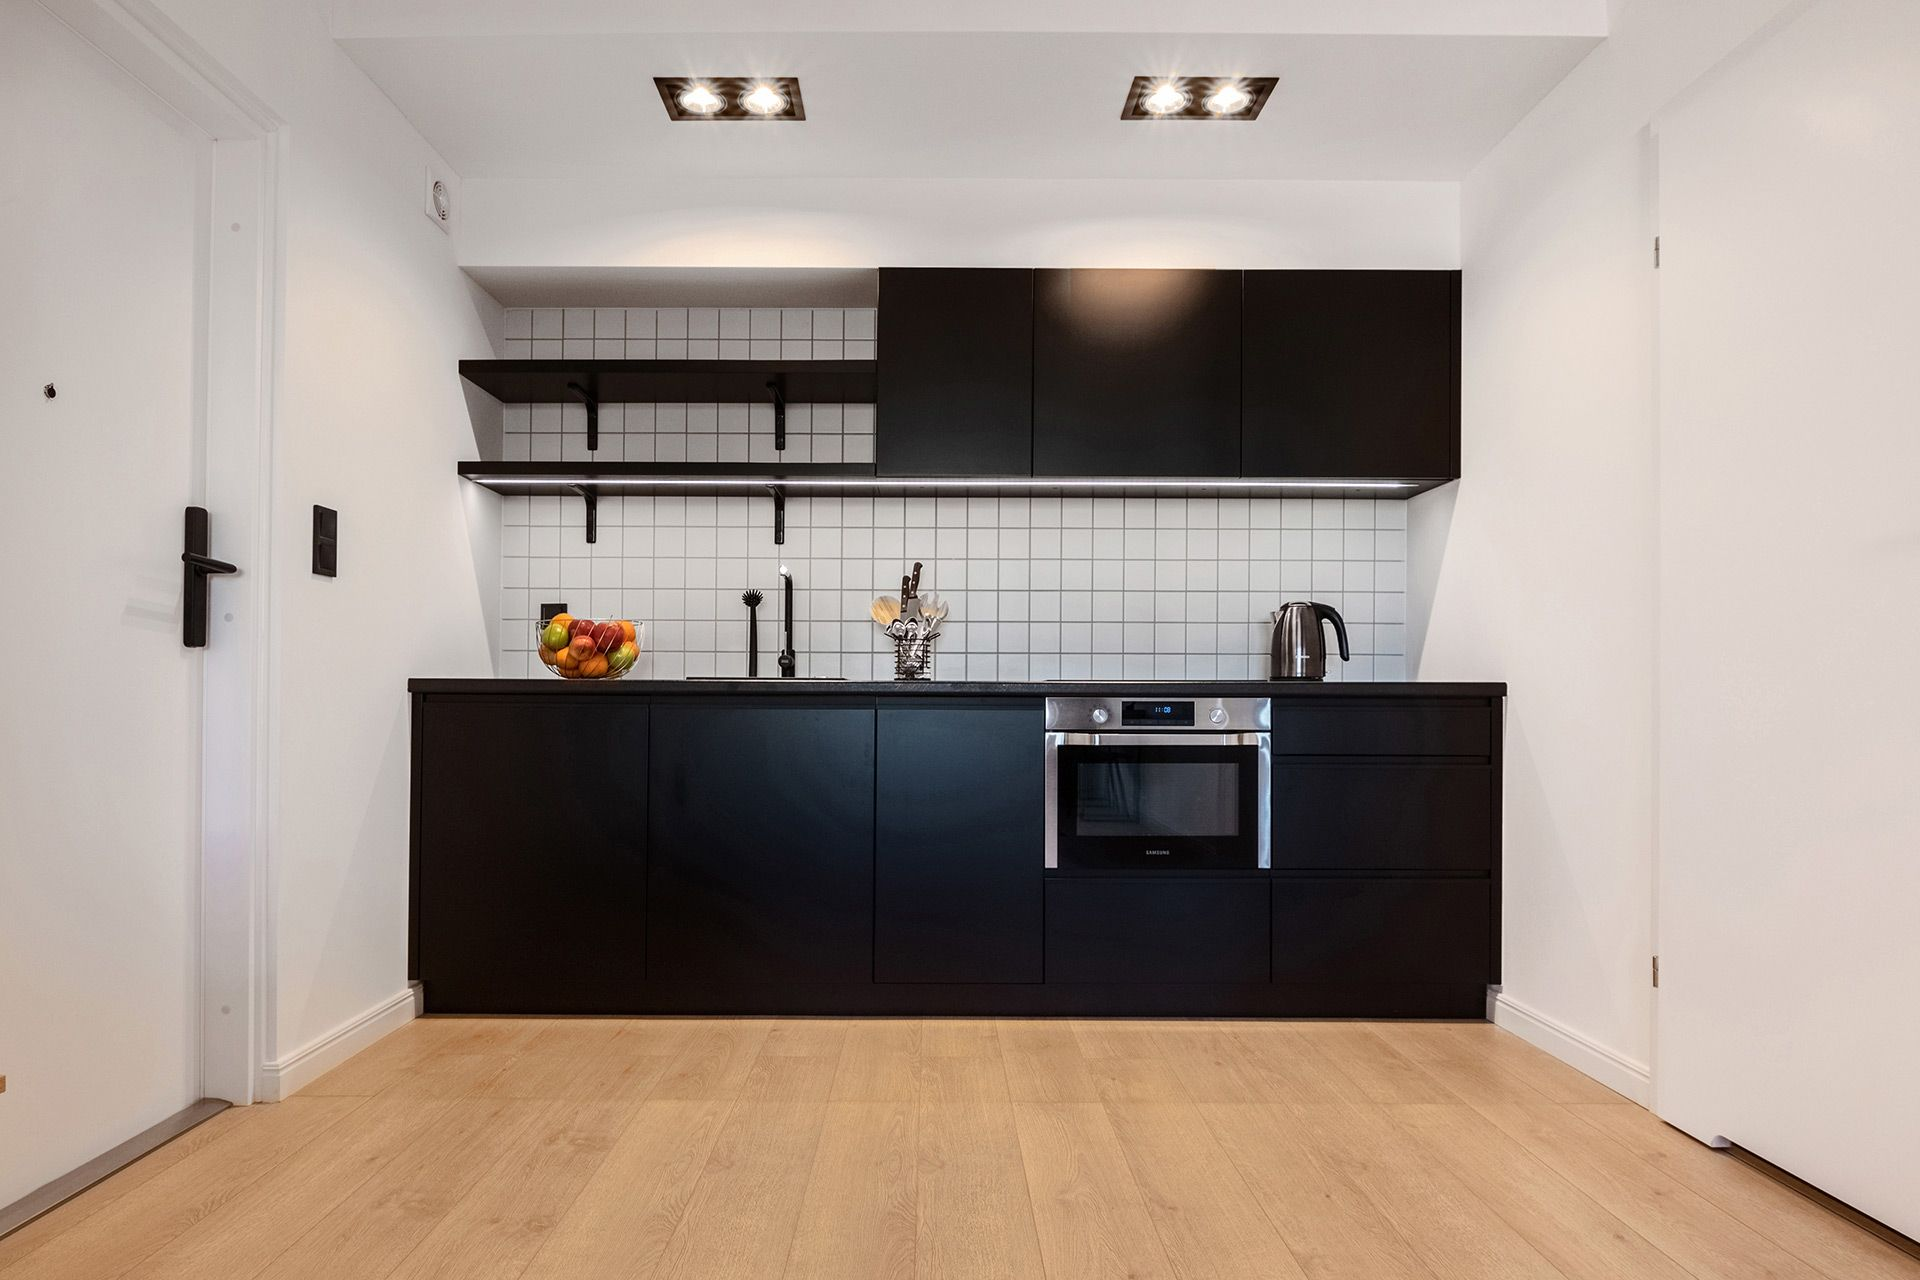 1 Bedroom - Medium apartment to rent in Warsaw UPR-A-069-1